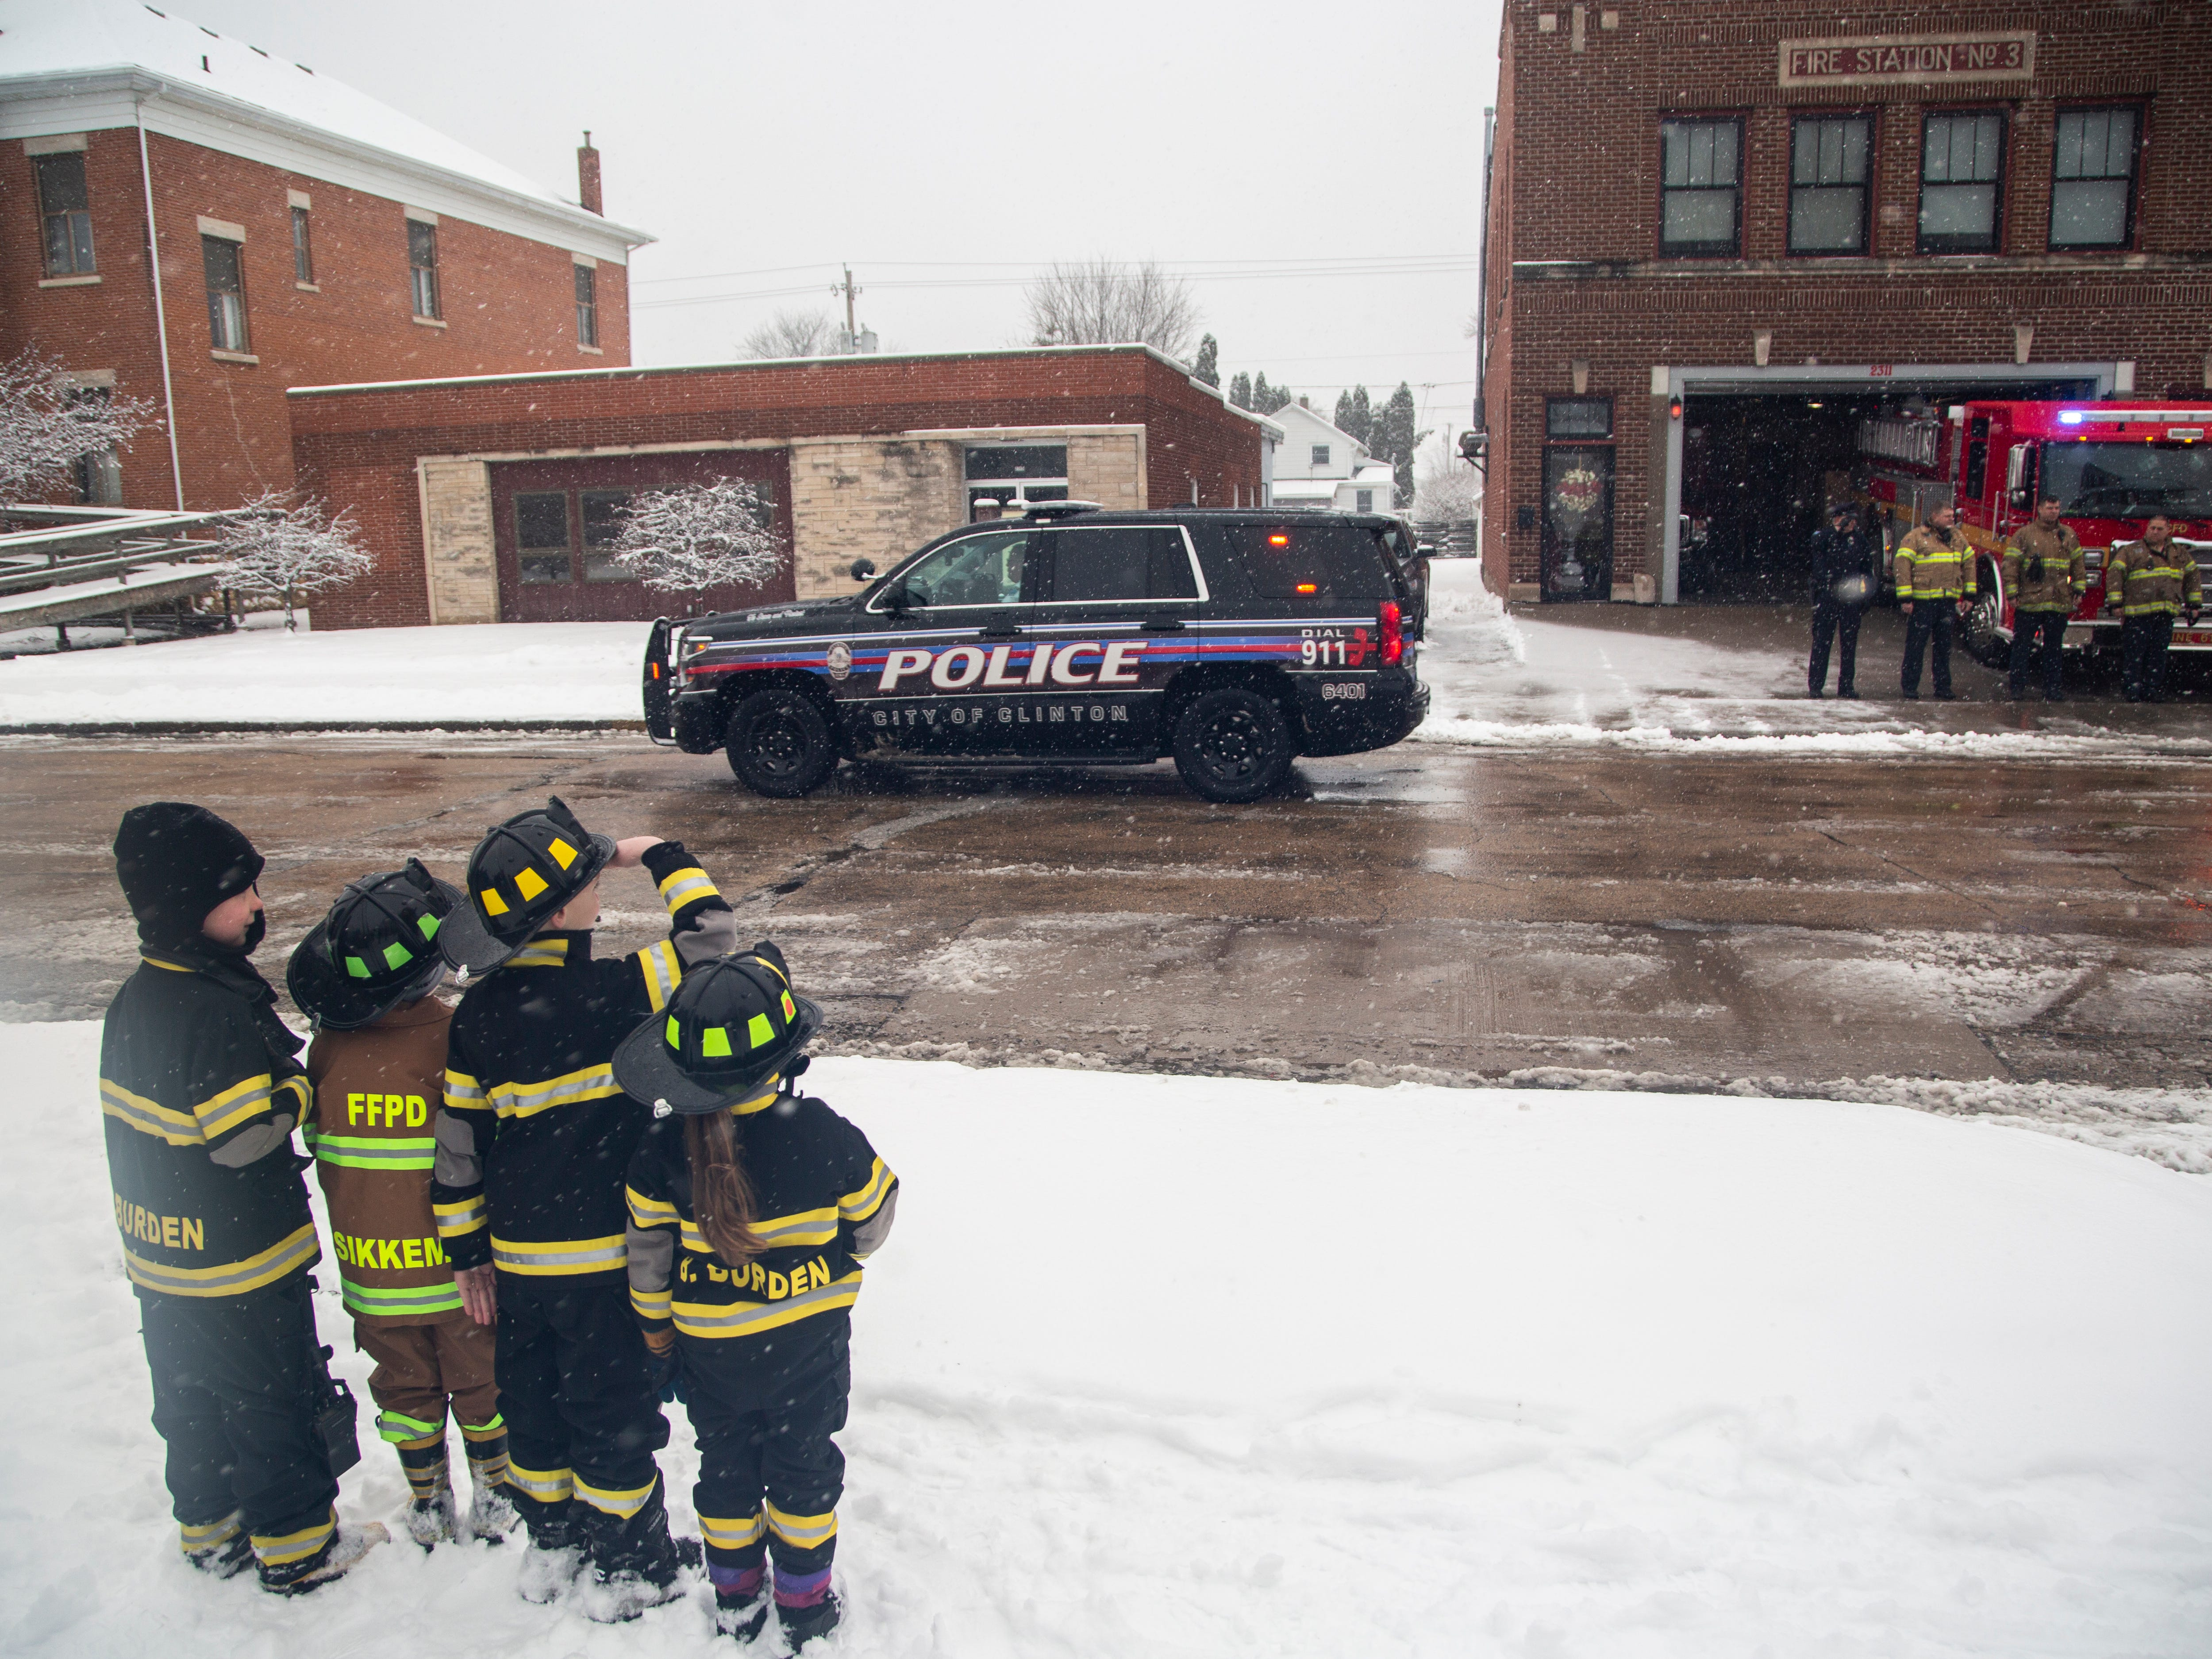 Kinnick Burden, 6, Jackson Sikkema, 5, Jax Stage, 6, and Brynlee Burden, 4, look on as vehicles drive in a procession past Fire Station No. 3 after the public memorial service for Lt. Eric Hosette on Saturday, Jan. 12, 2019, along 2nd Street in Clinton, Iowa.